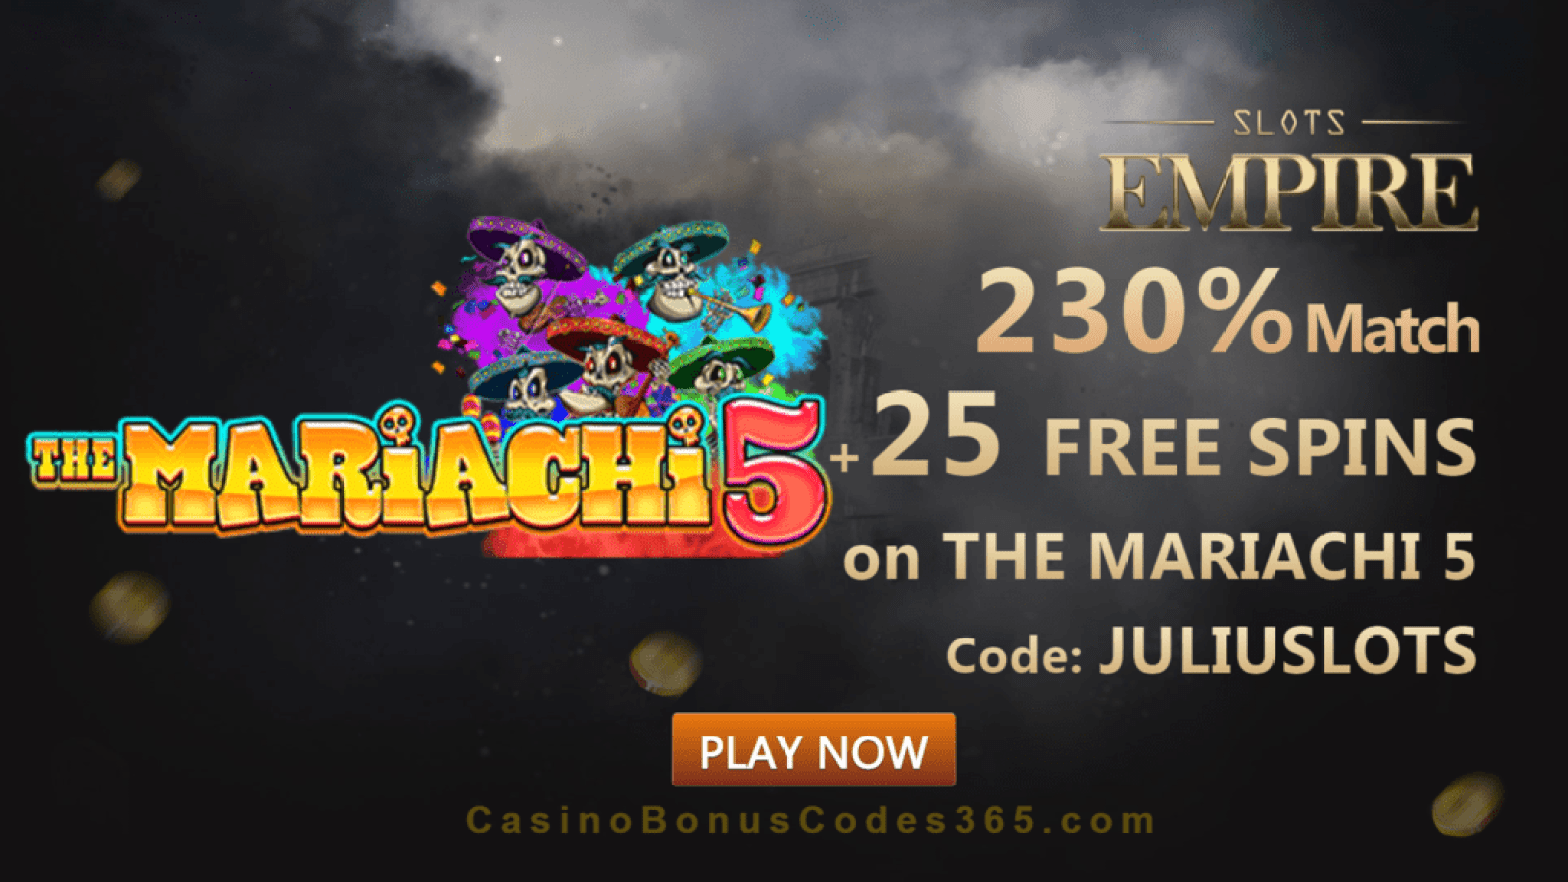 Slots Empire 230% Match Bonus plus 25 FREE Spins on RTG The Mariachi 5 New Players Promo